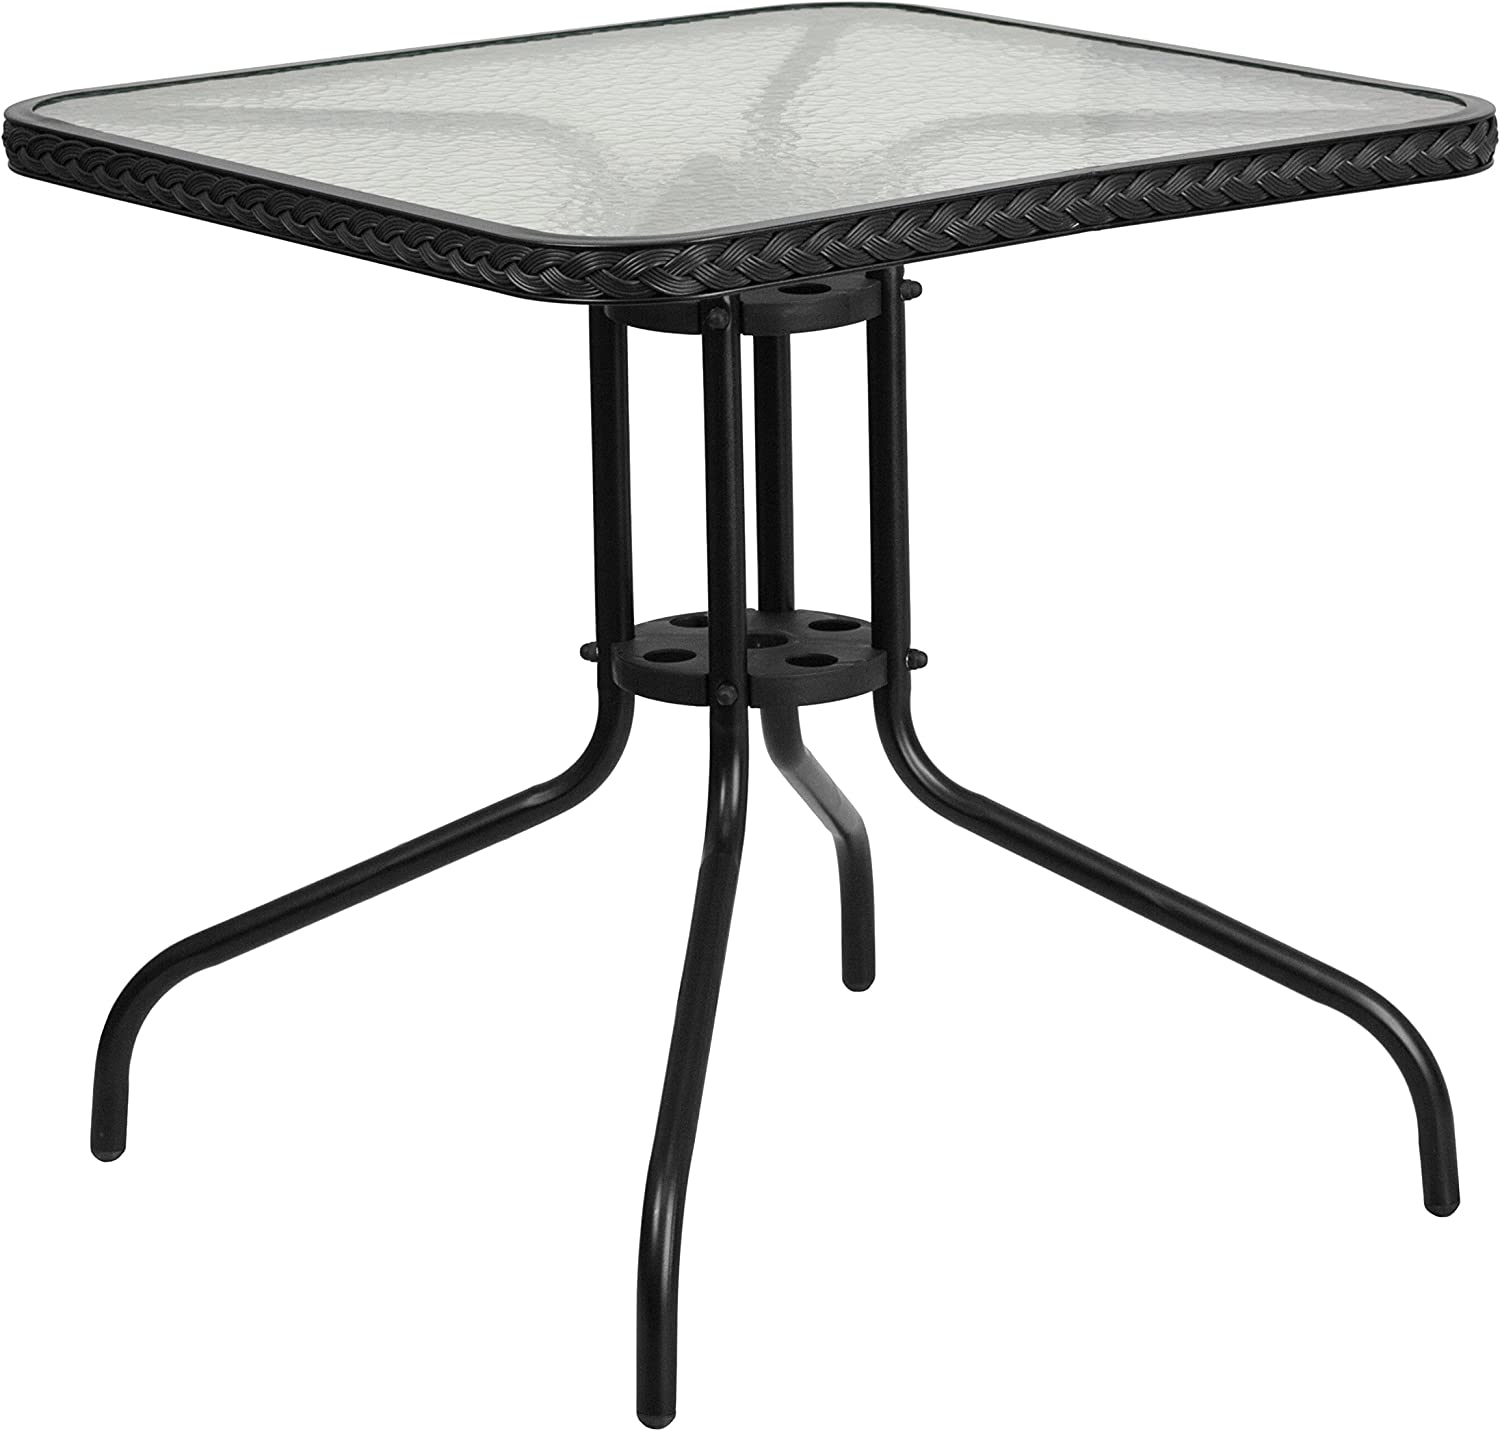 Flash Furniture Square Tempered Glass Metal Table with Black Rattan Edging, 28-Inch